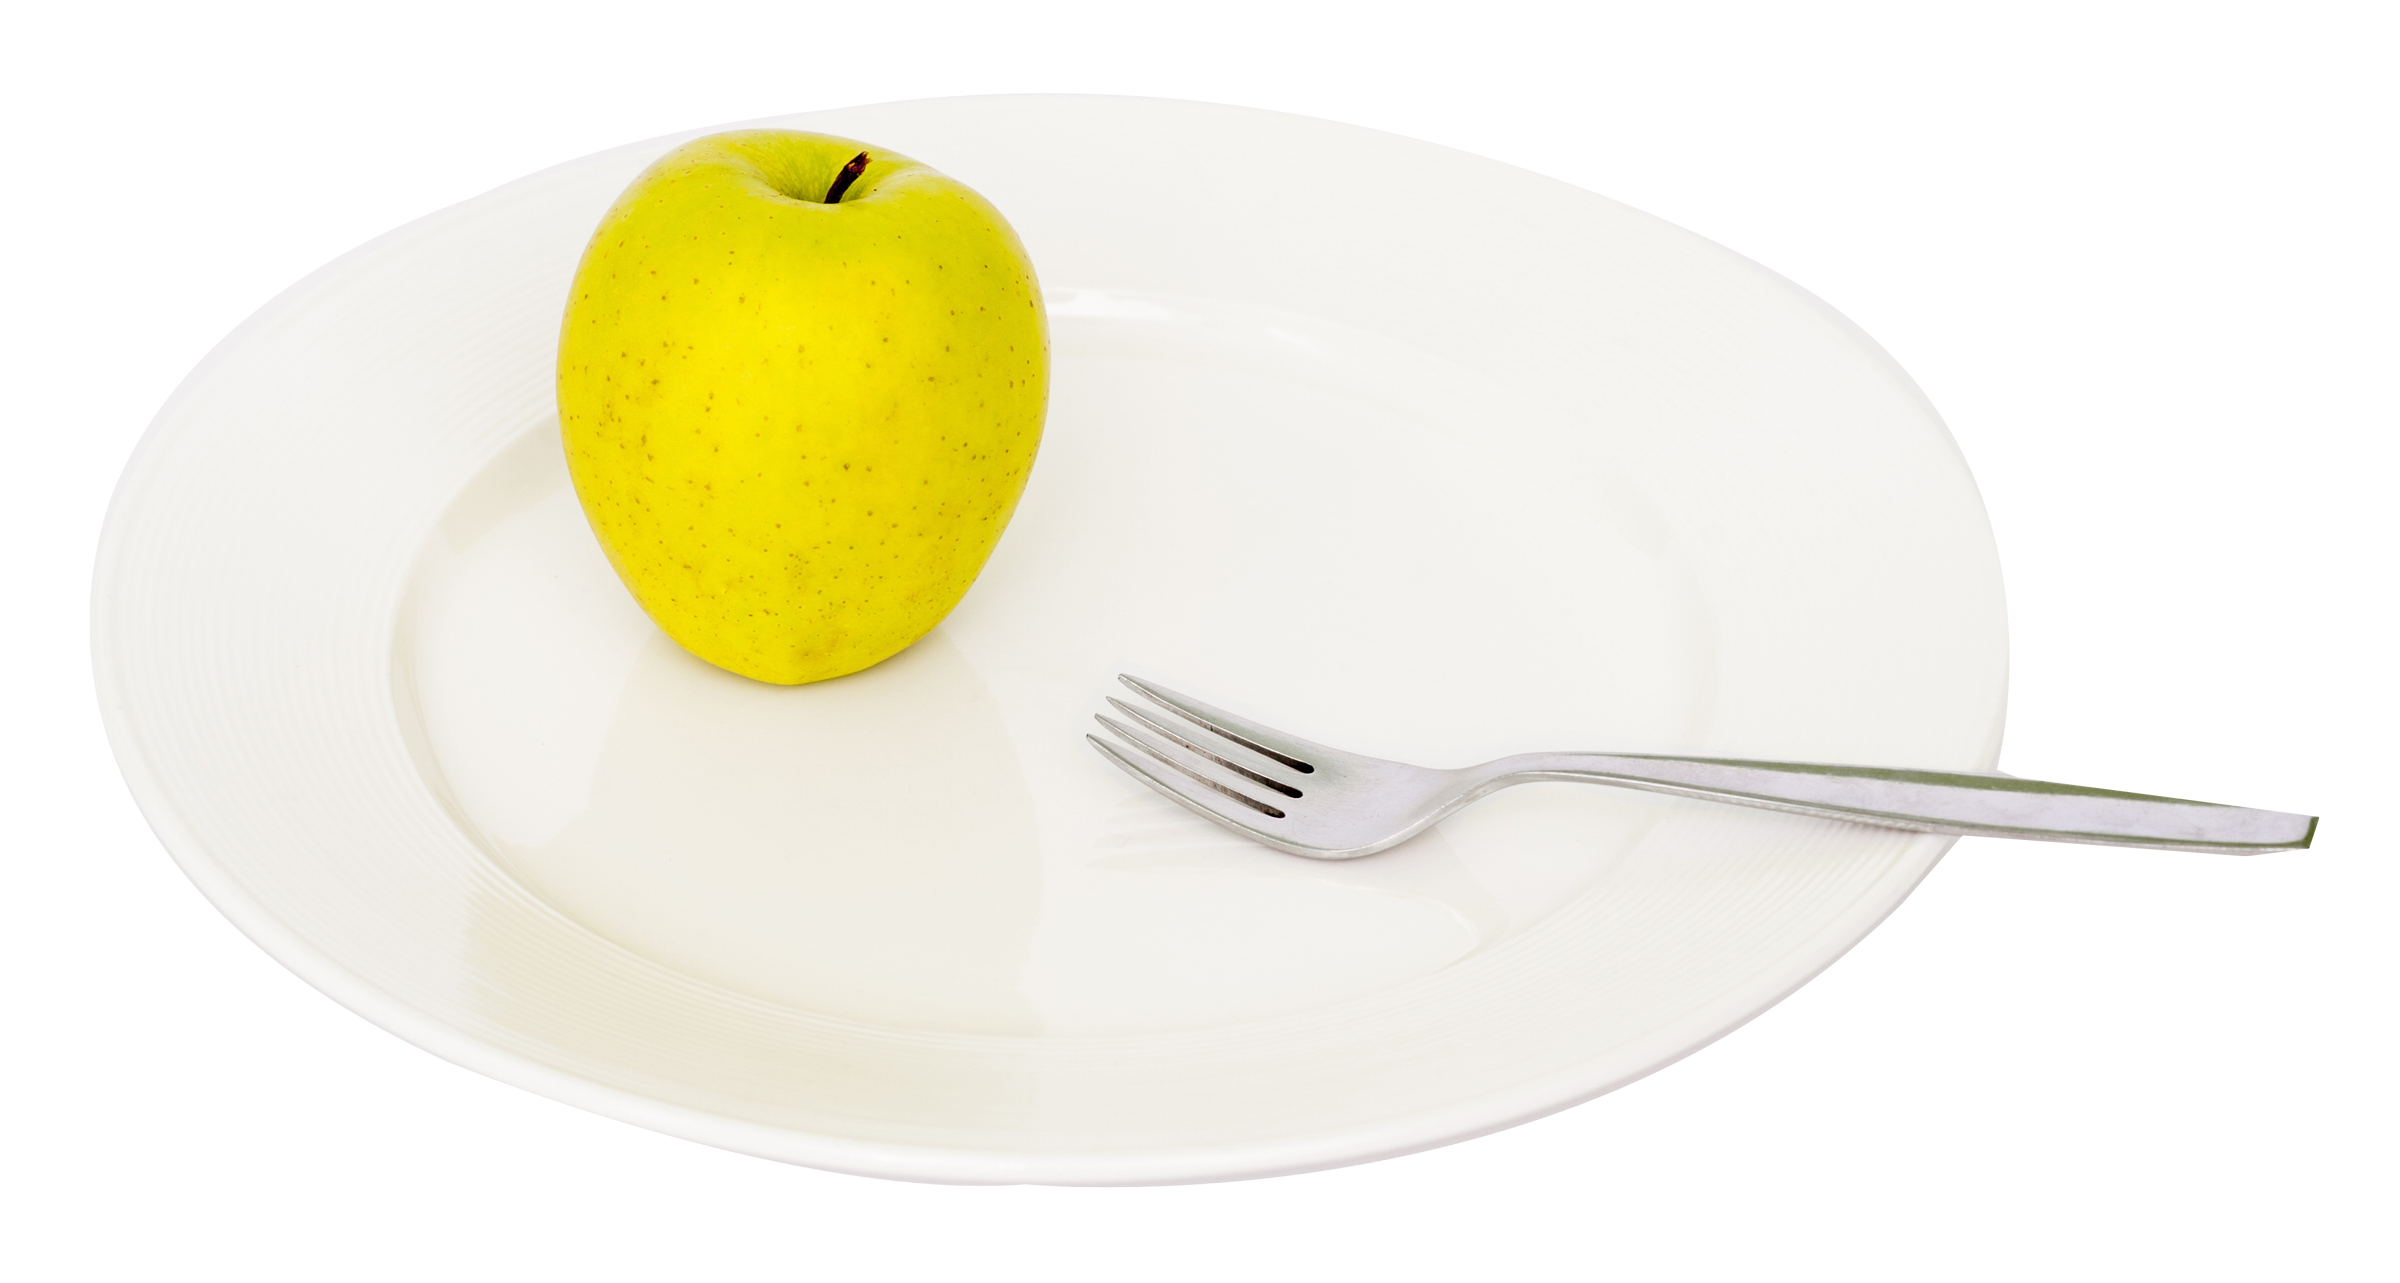 Green Apple in Plate